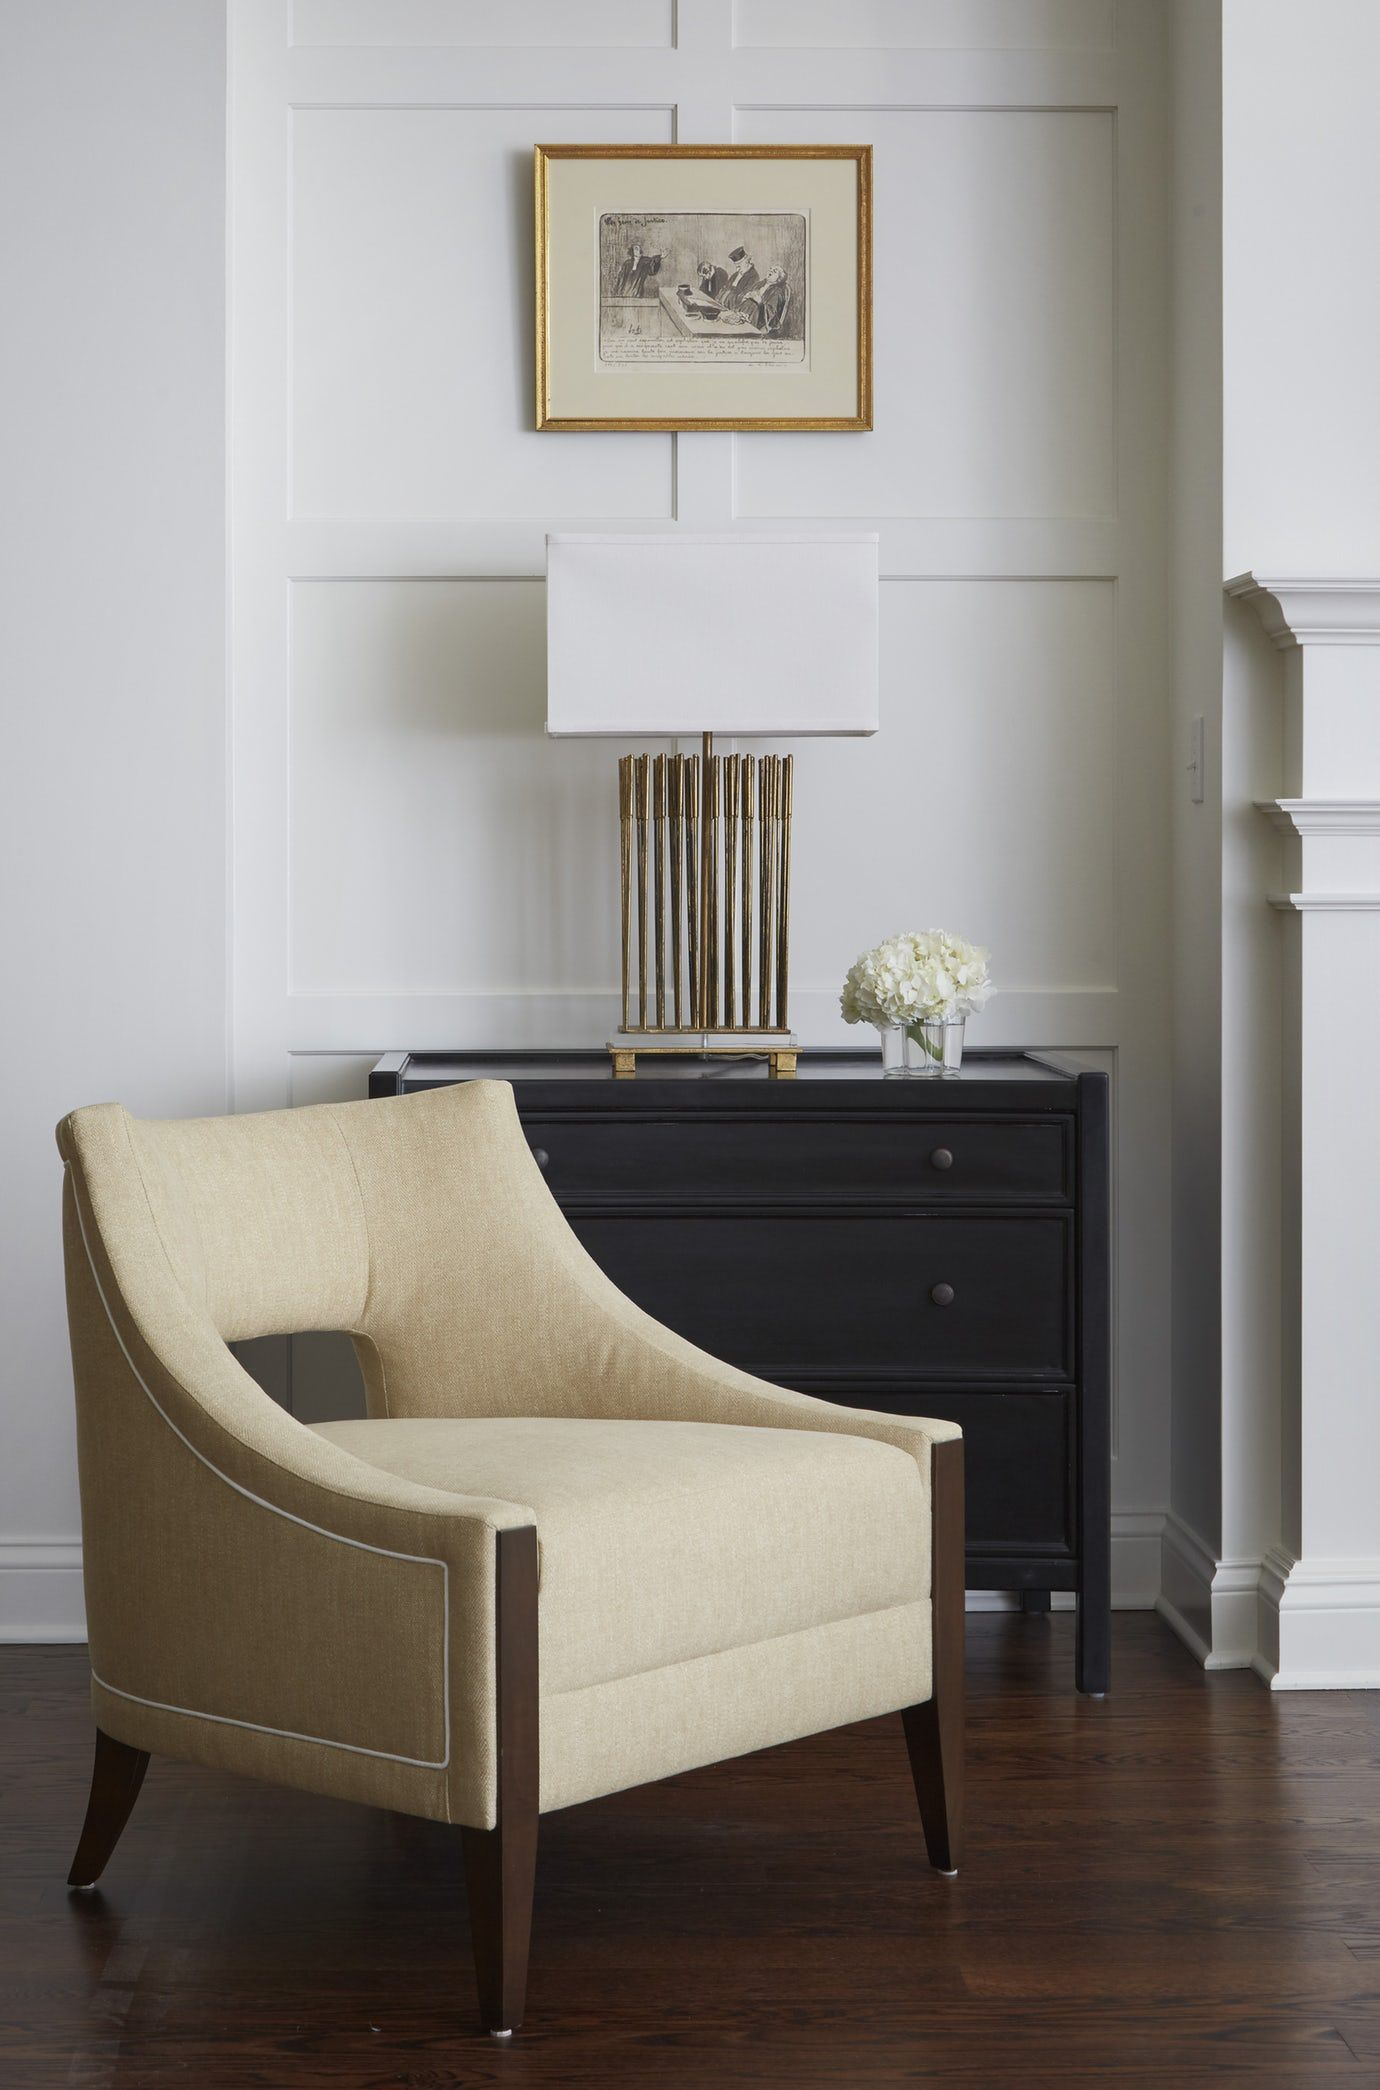 Powder Room By Amy Kartheiser Design: Detail Shot Of Millwork, Lamp, Chair And Chest Vignette